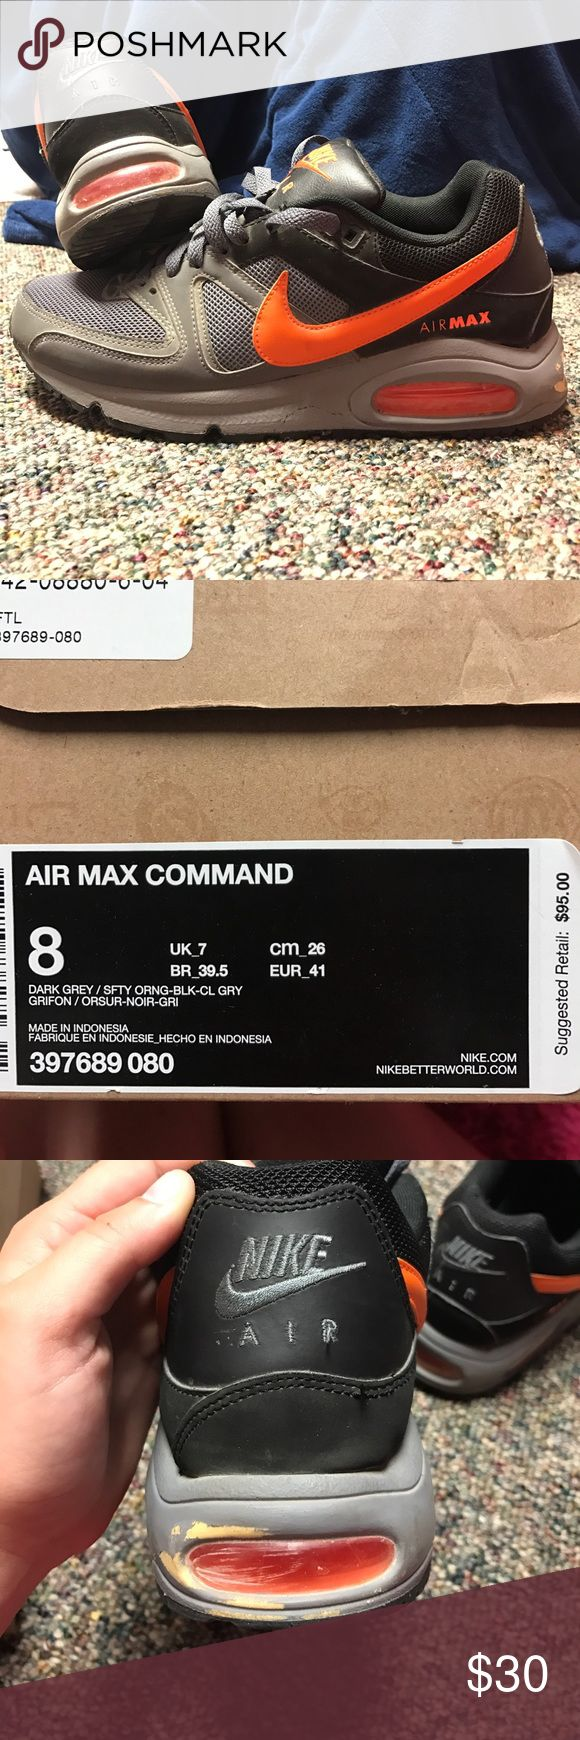 Nike Air Max Command Nike Air Max worn a couple times. Has a scuff on the back of the left shoe which is pictured and reflected in the price. Other than that they are in great condition and are great shoes. Nike Shoes Athletic Shoes